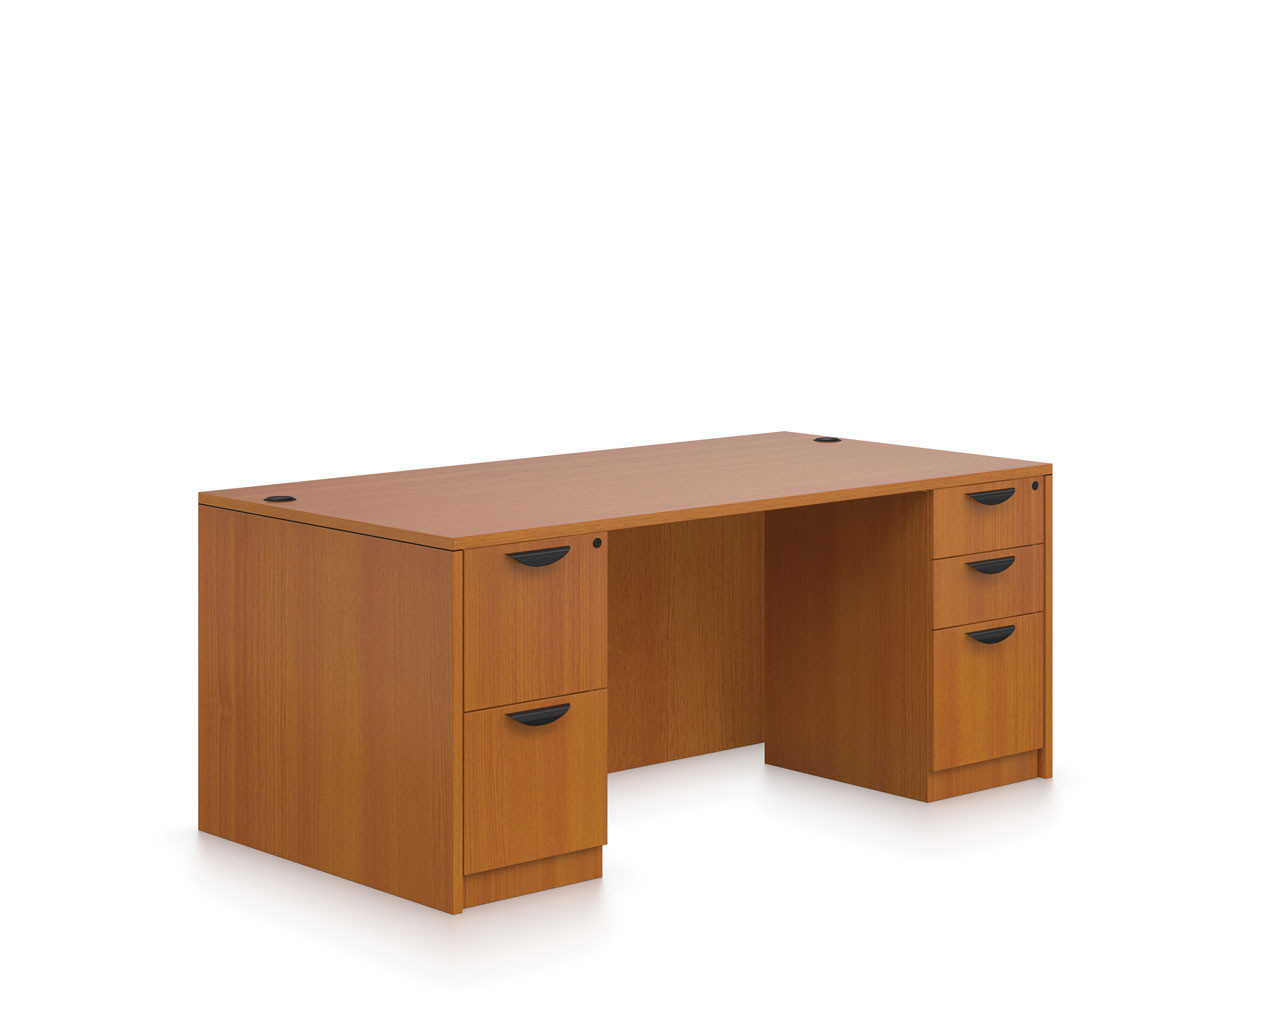 Best ideas about Affordable Office Furniture . Save or Pin Double Pedestal Desk Affordable fice Furniture Desk Now.